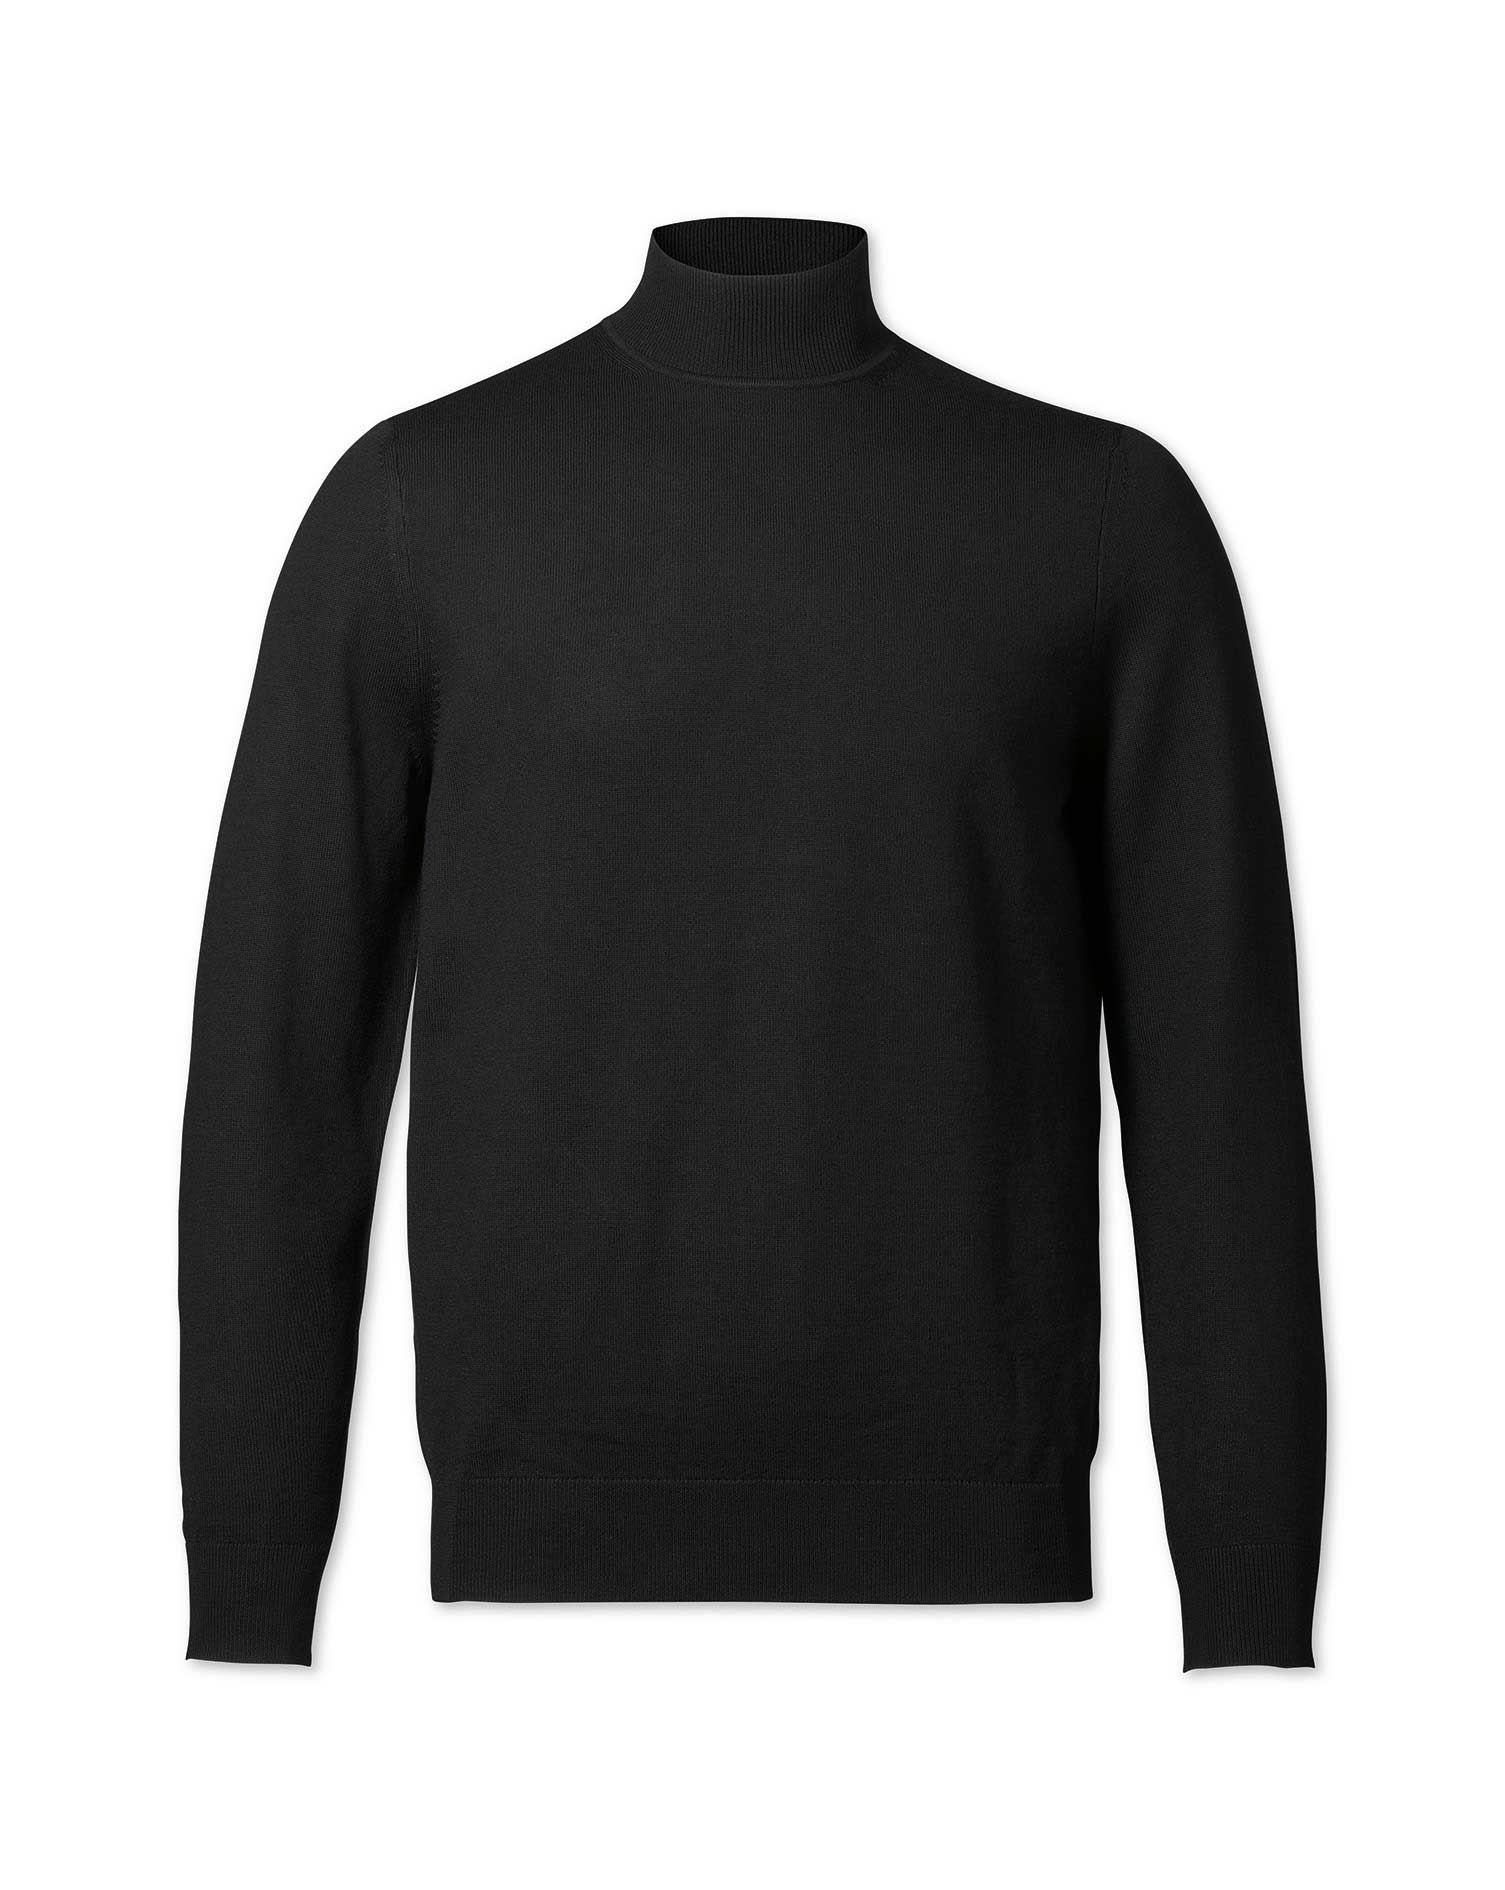 Black Turtleneck Merino Wool Jumper Size Small by Charles Tyrwhitt